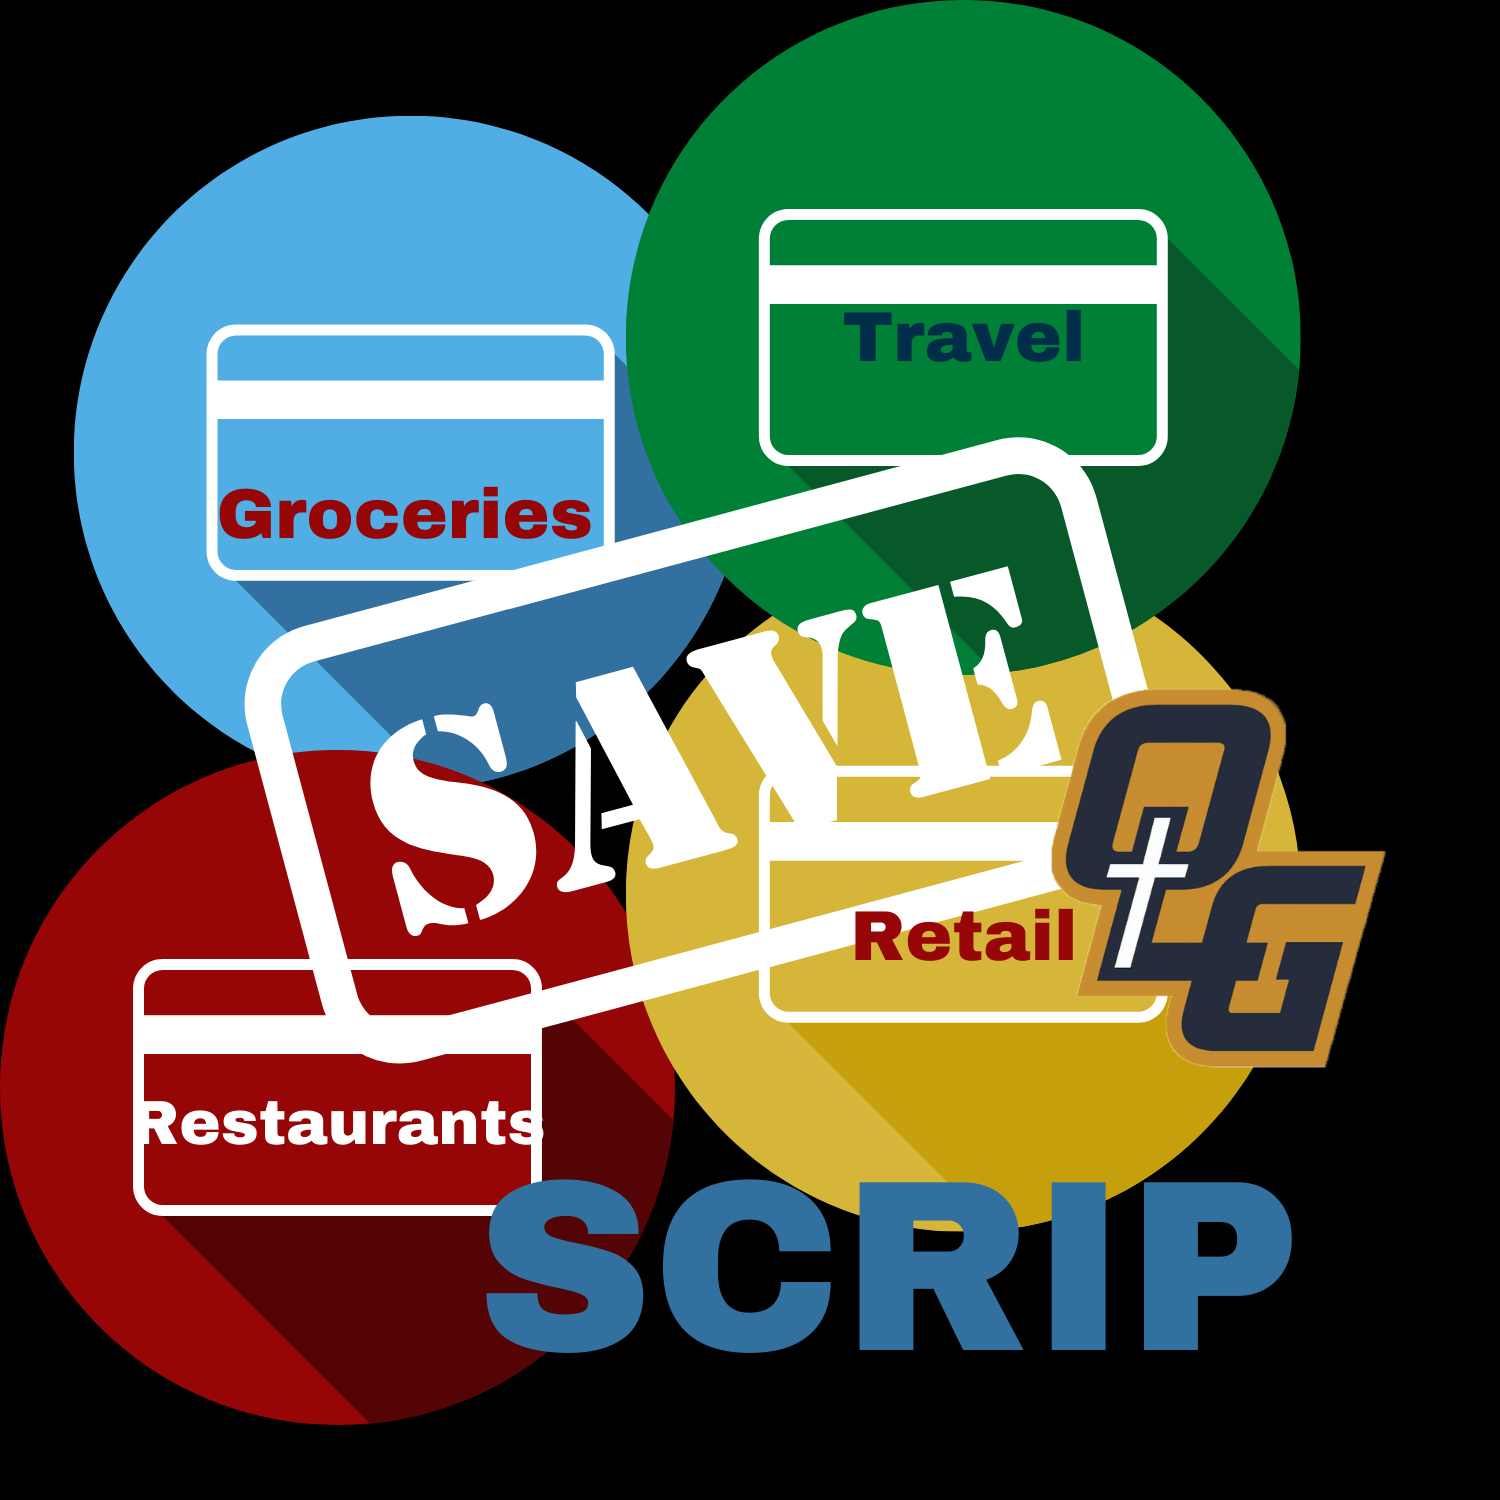 WHAT IS SCRIP?